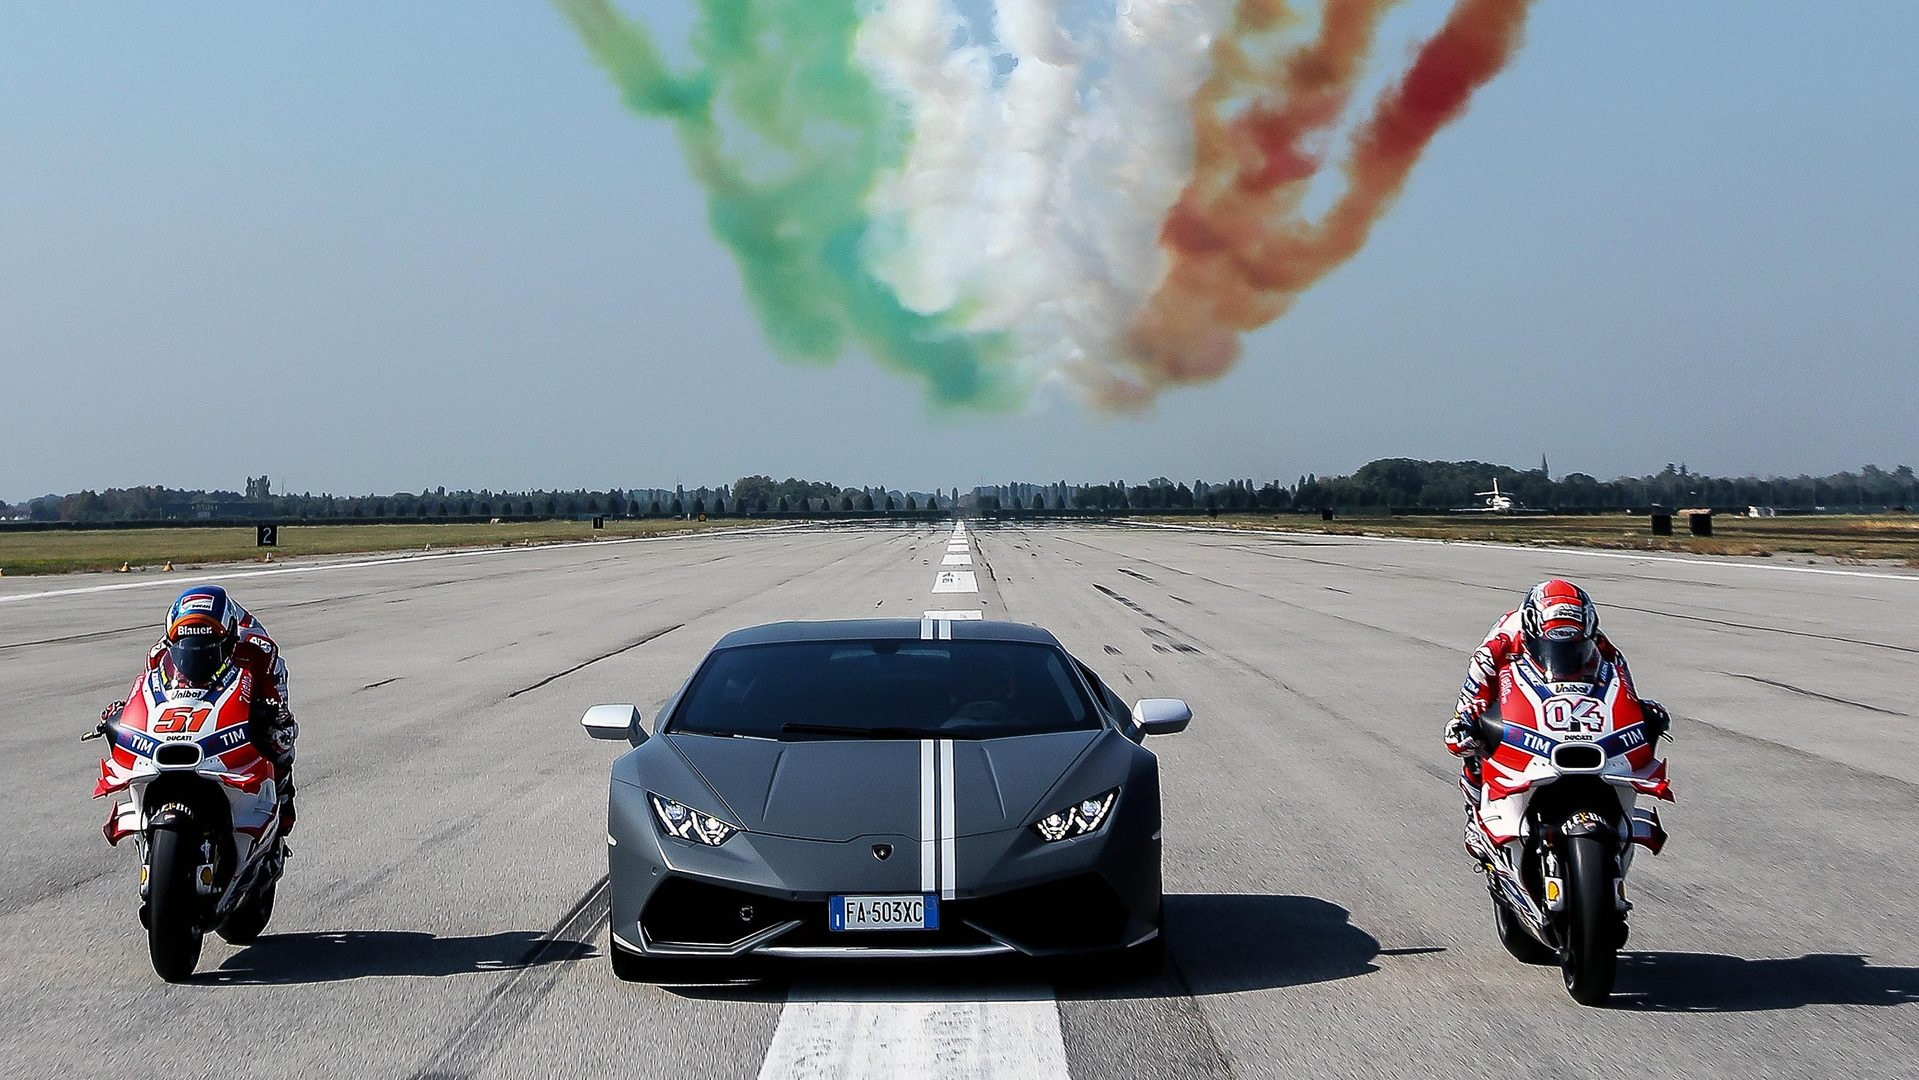 Lamborghini Celebrates Passioni Tricolori With Ducati And Italian